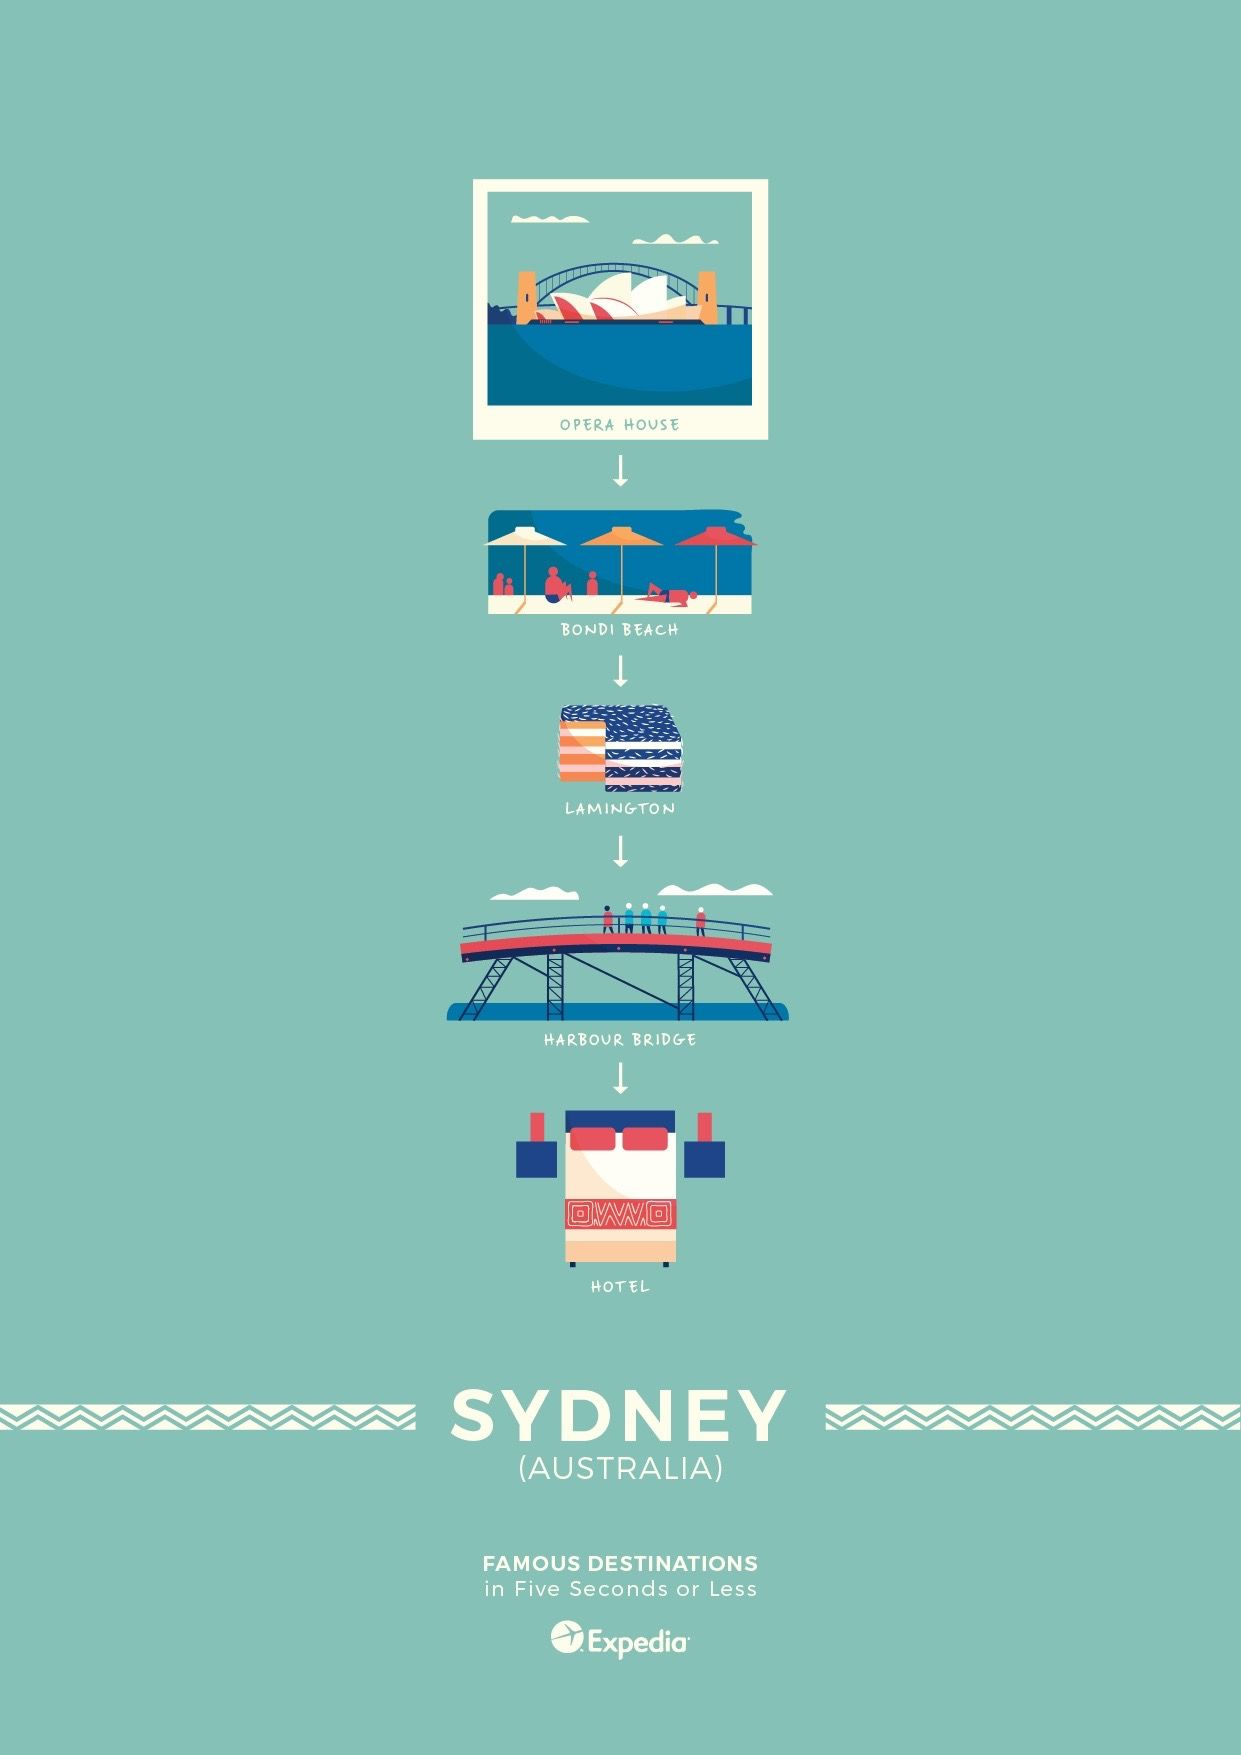 11_Sydney top destinations